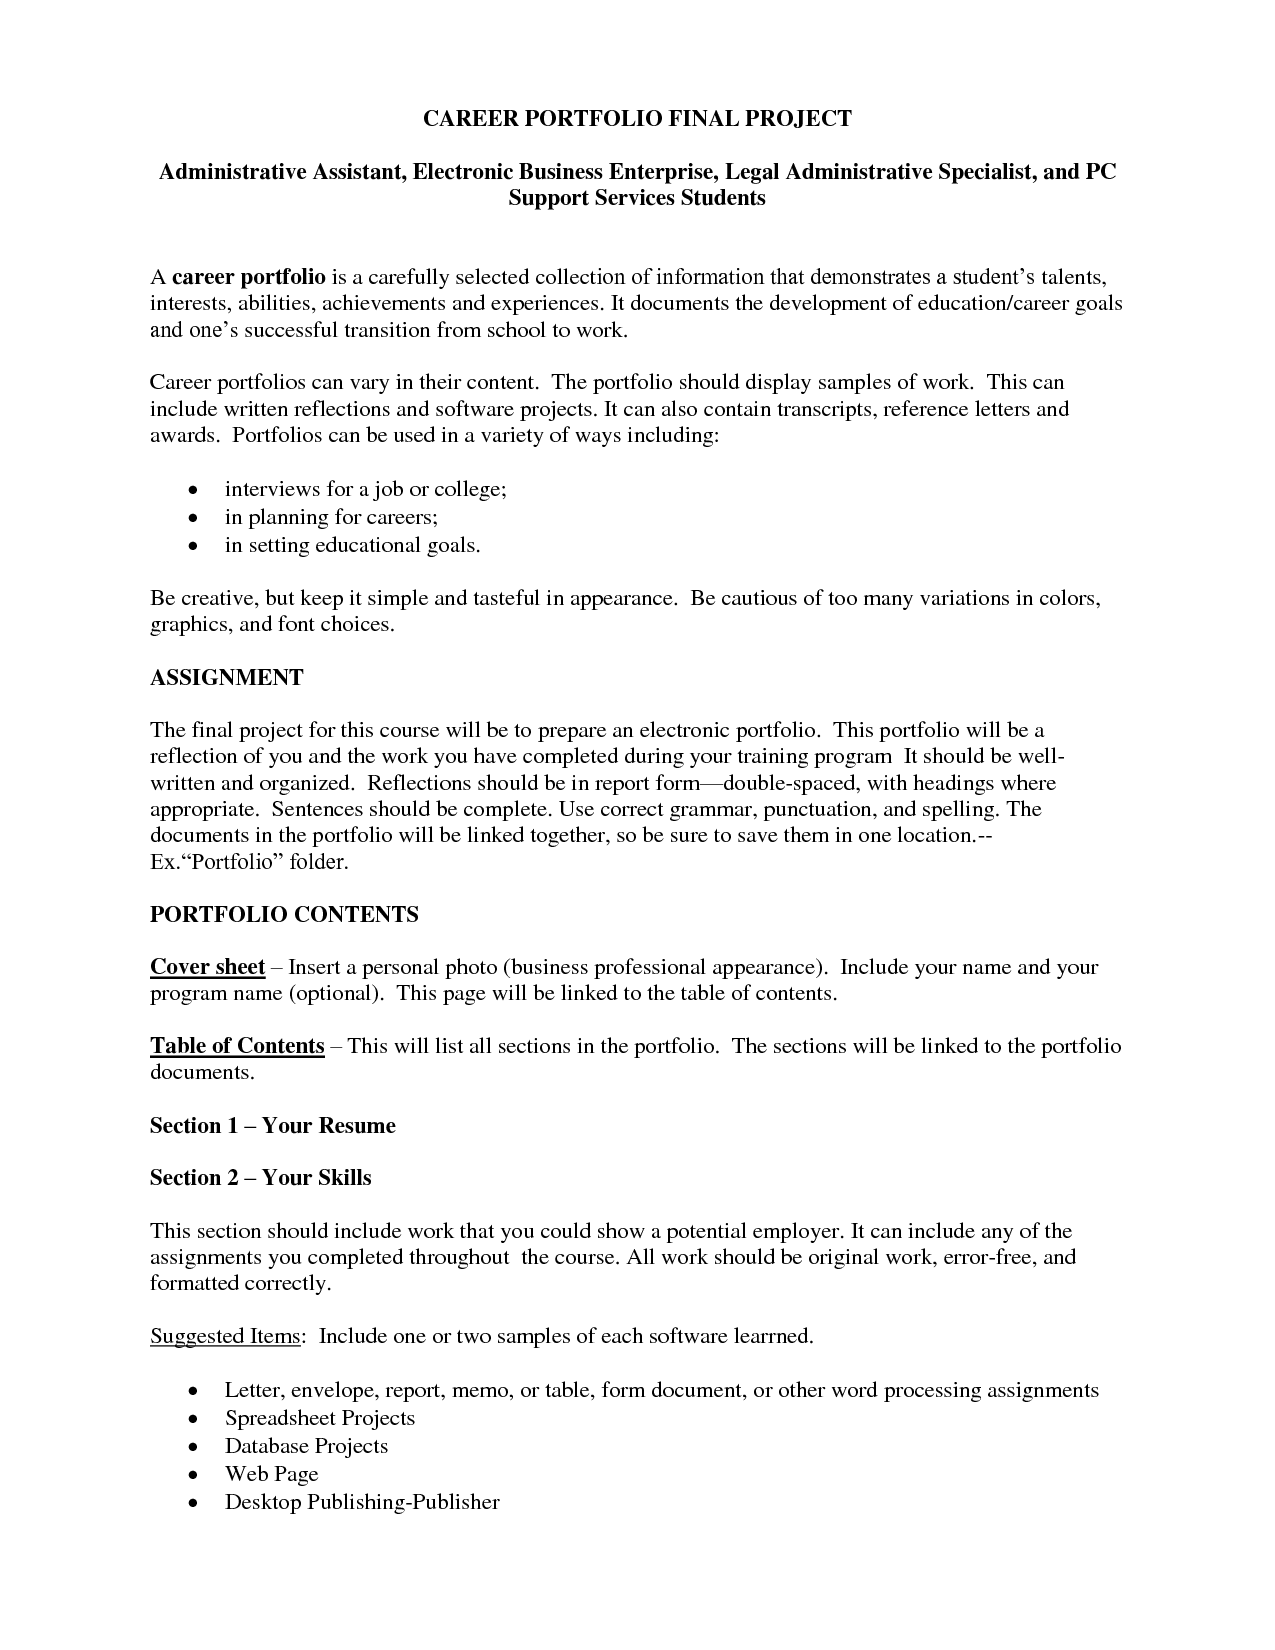 Free Admin Resume Templates  Resume Examples Free Download